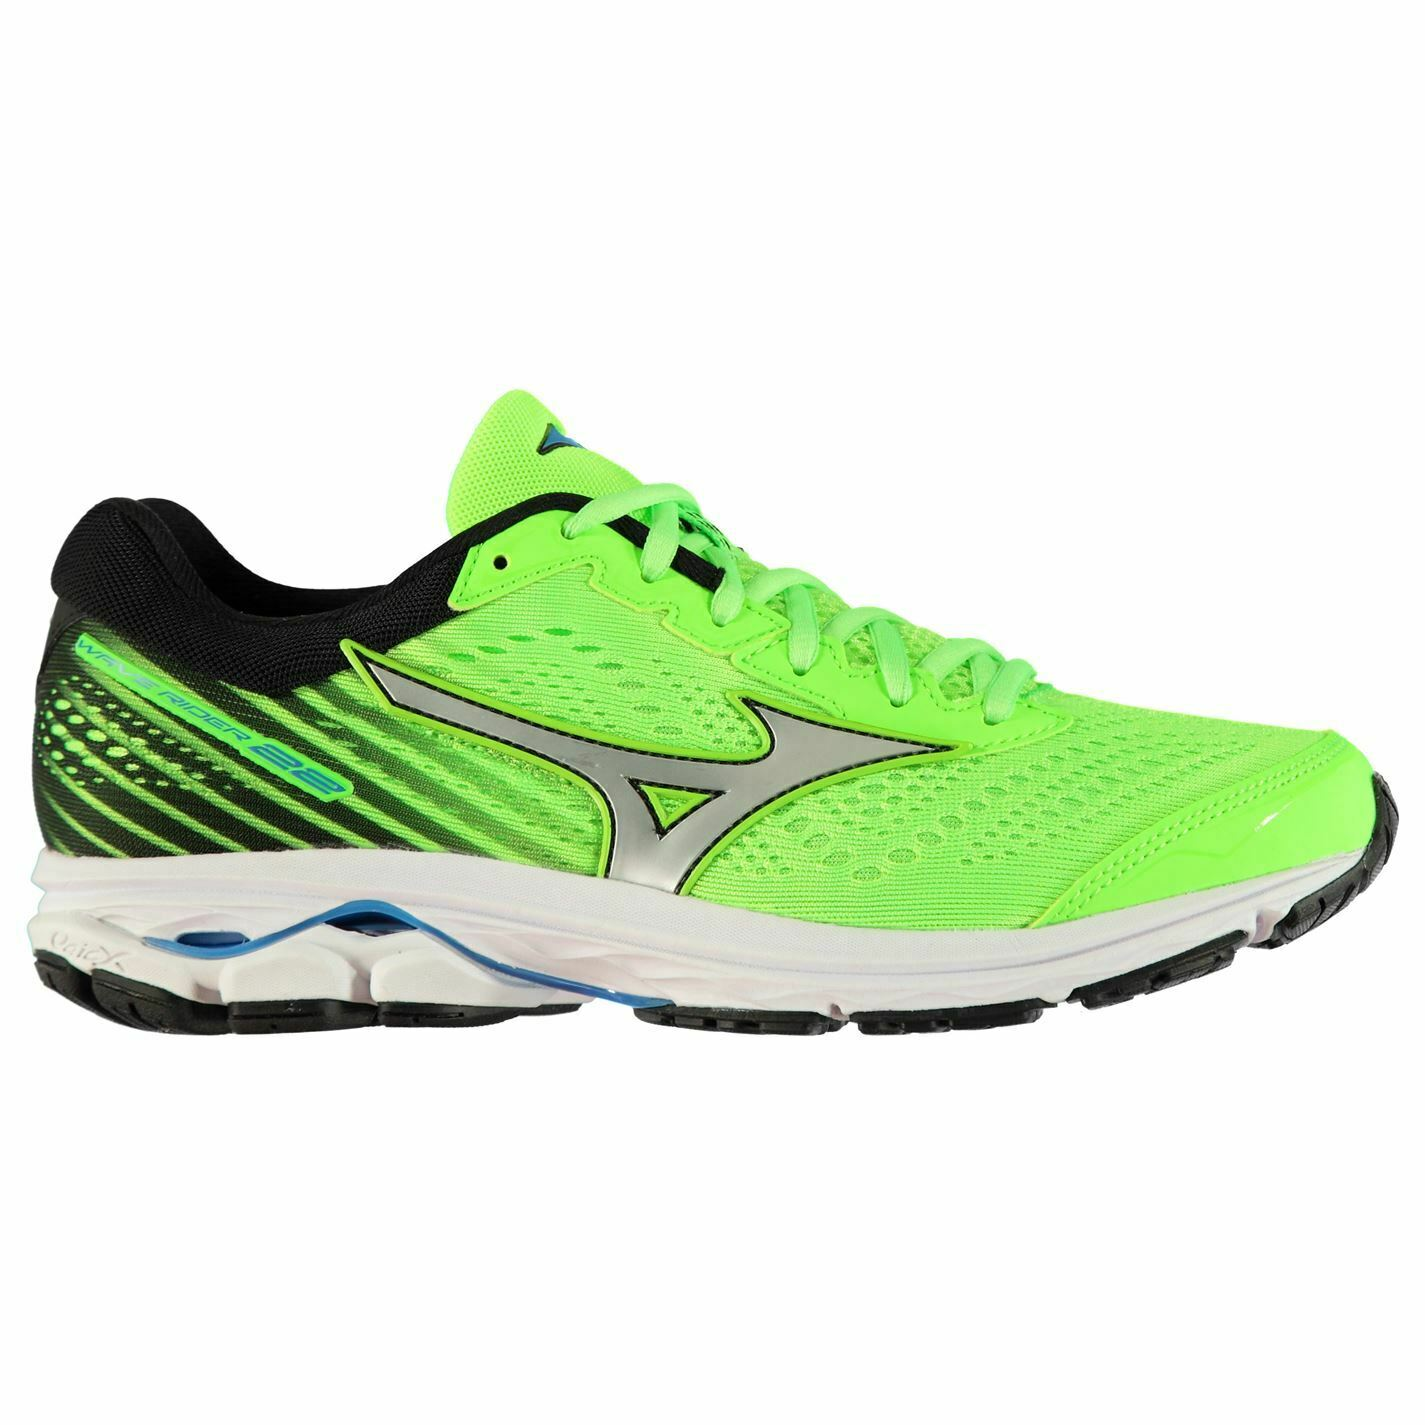 809432648 Mizuno Mens Wave Rider 22 Running shoes Athletic Trainers Sneakers Sport